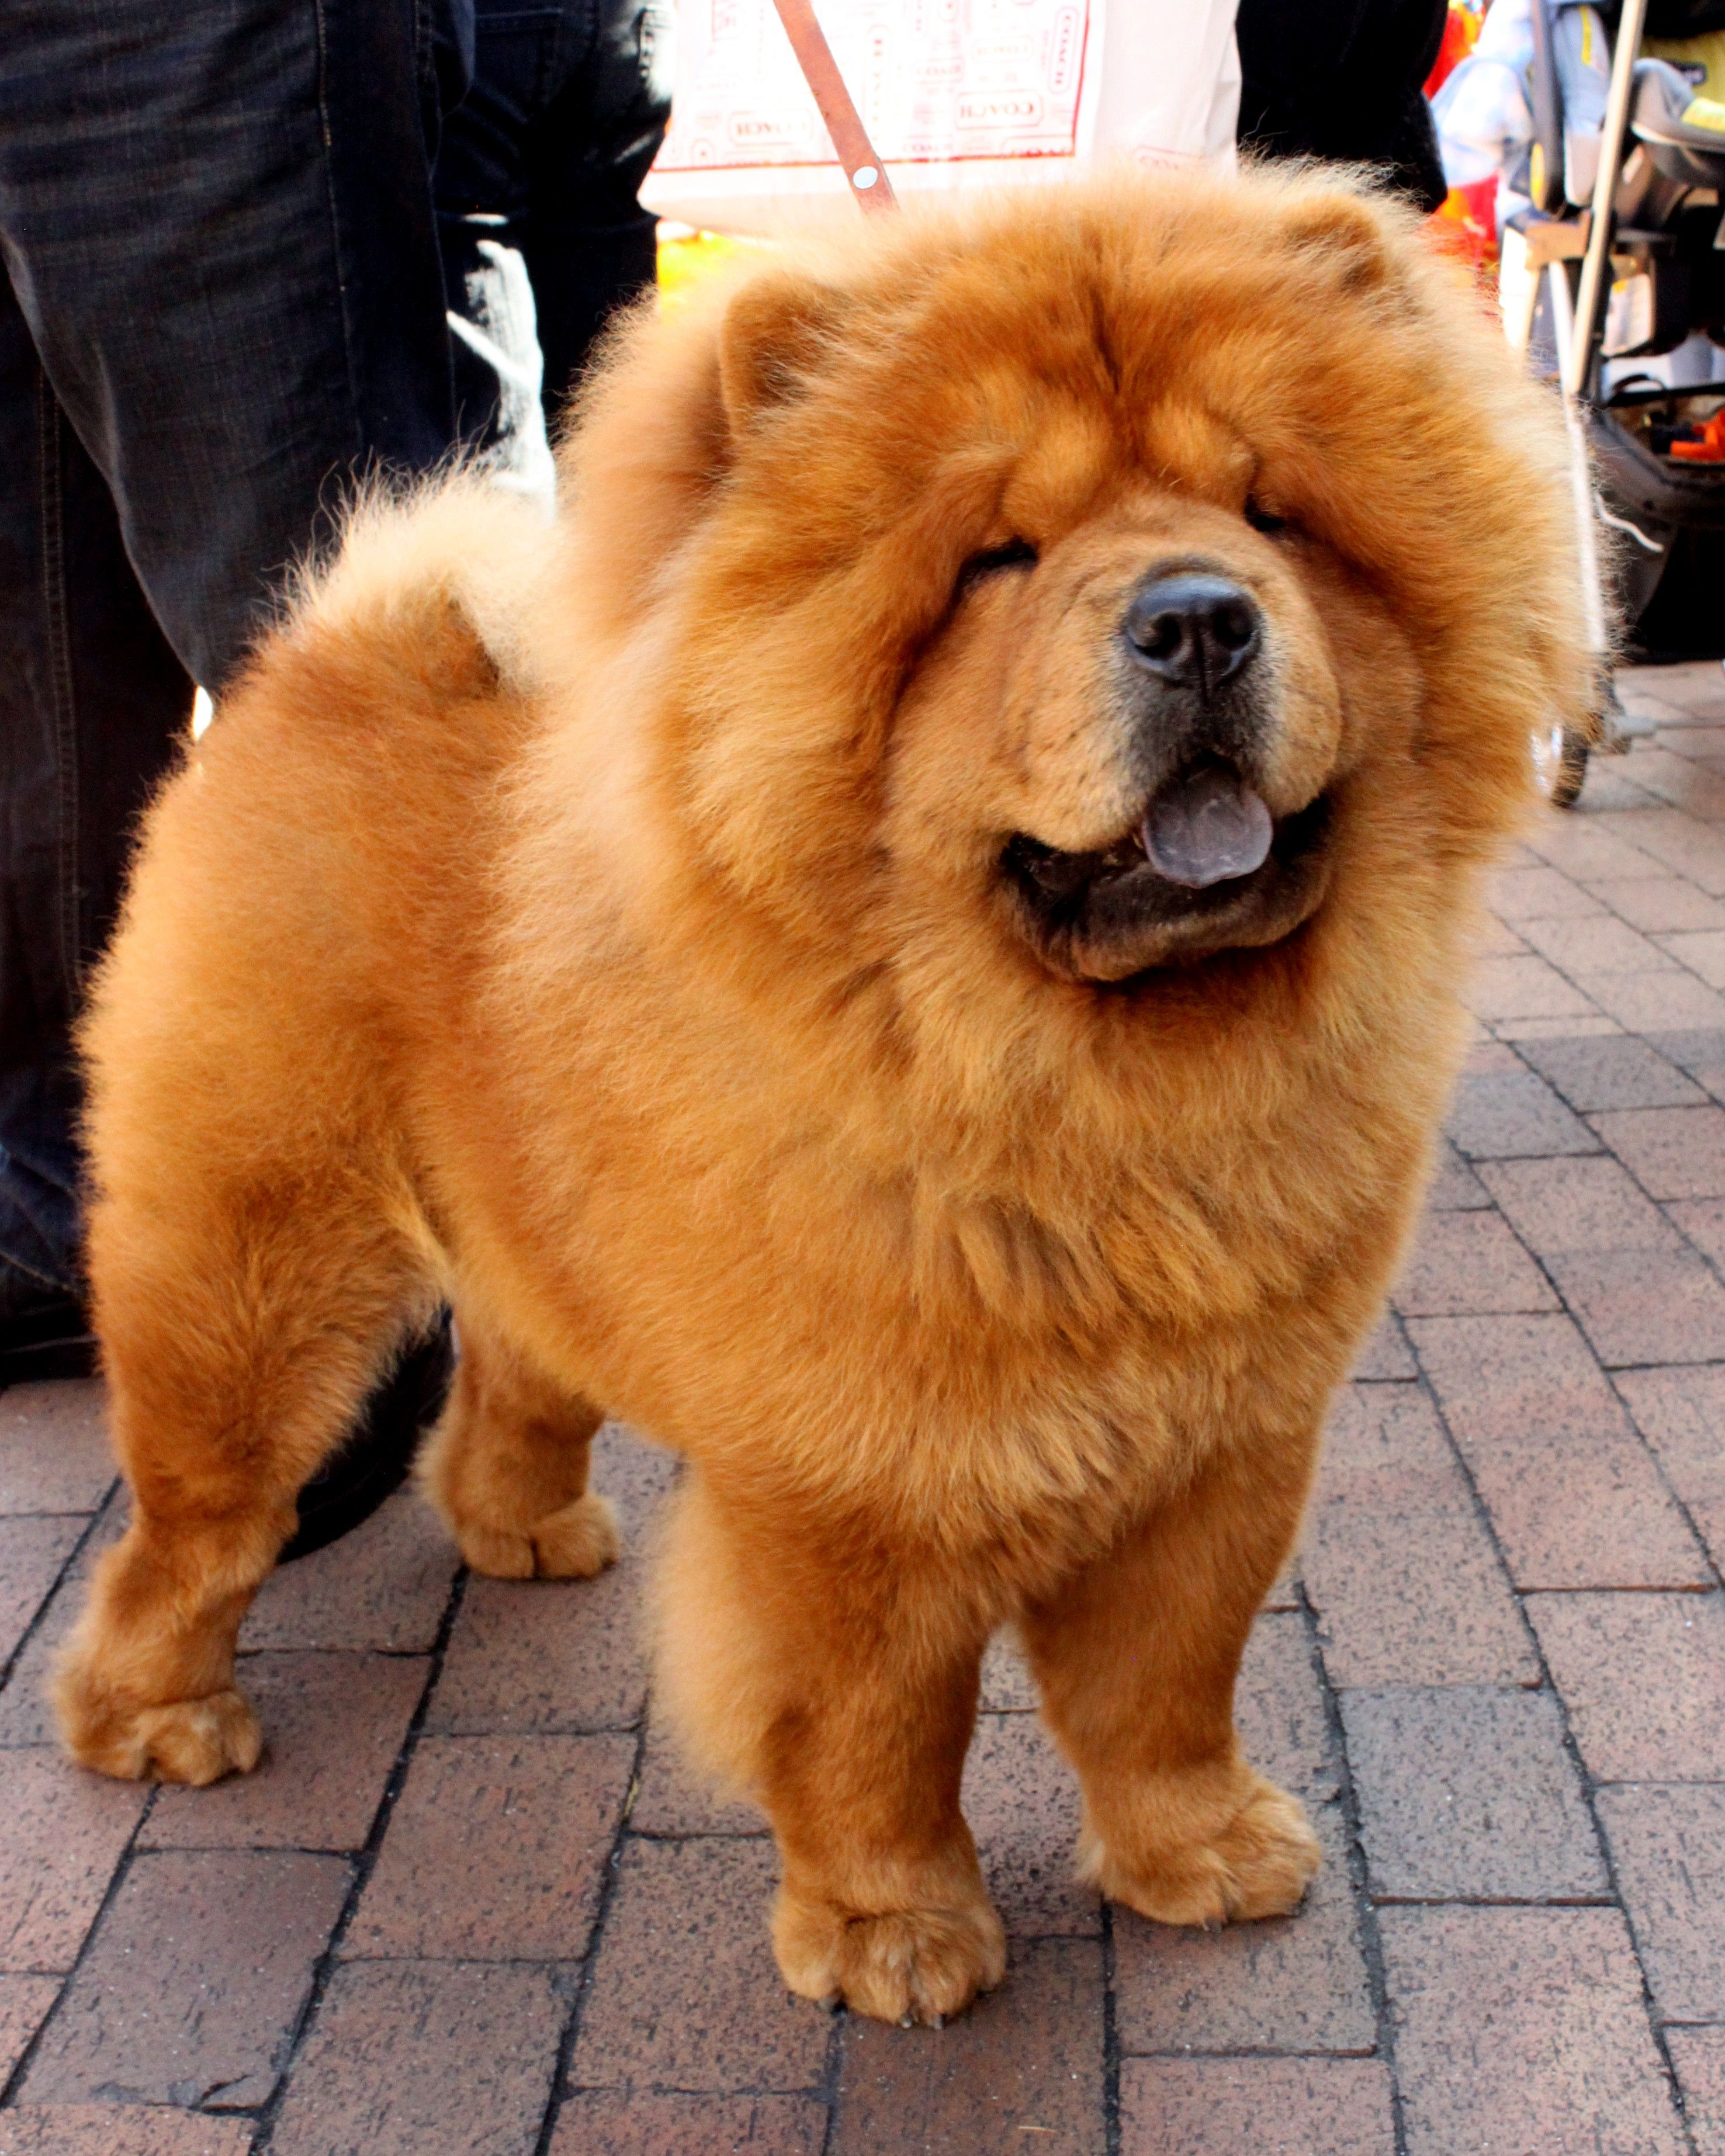 01 Chow Chow Jpg 2952 3690 Chow Chow Puppy Chow Chow Dogs